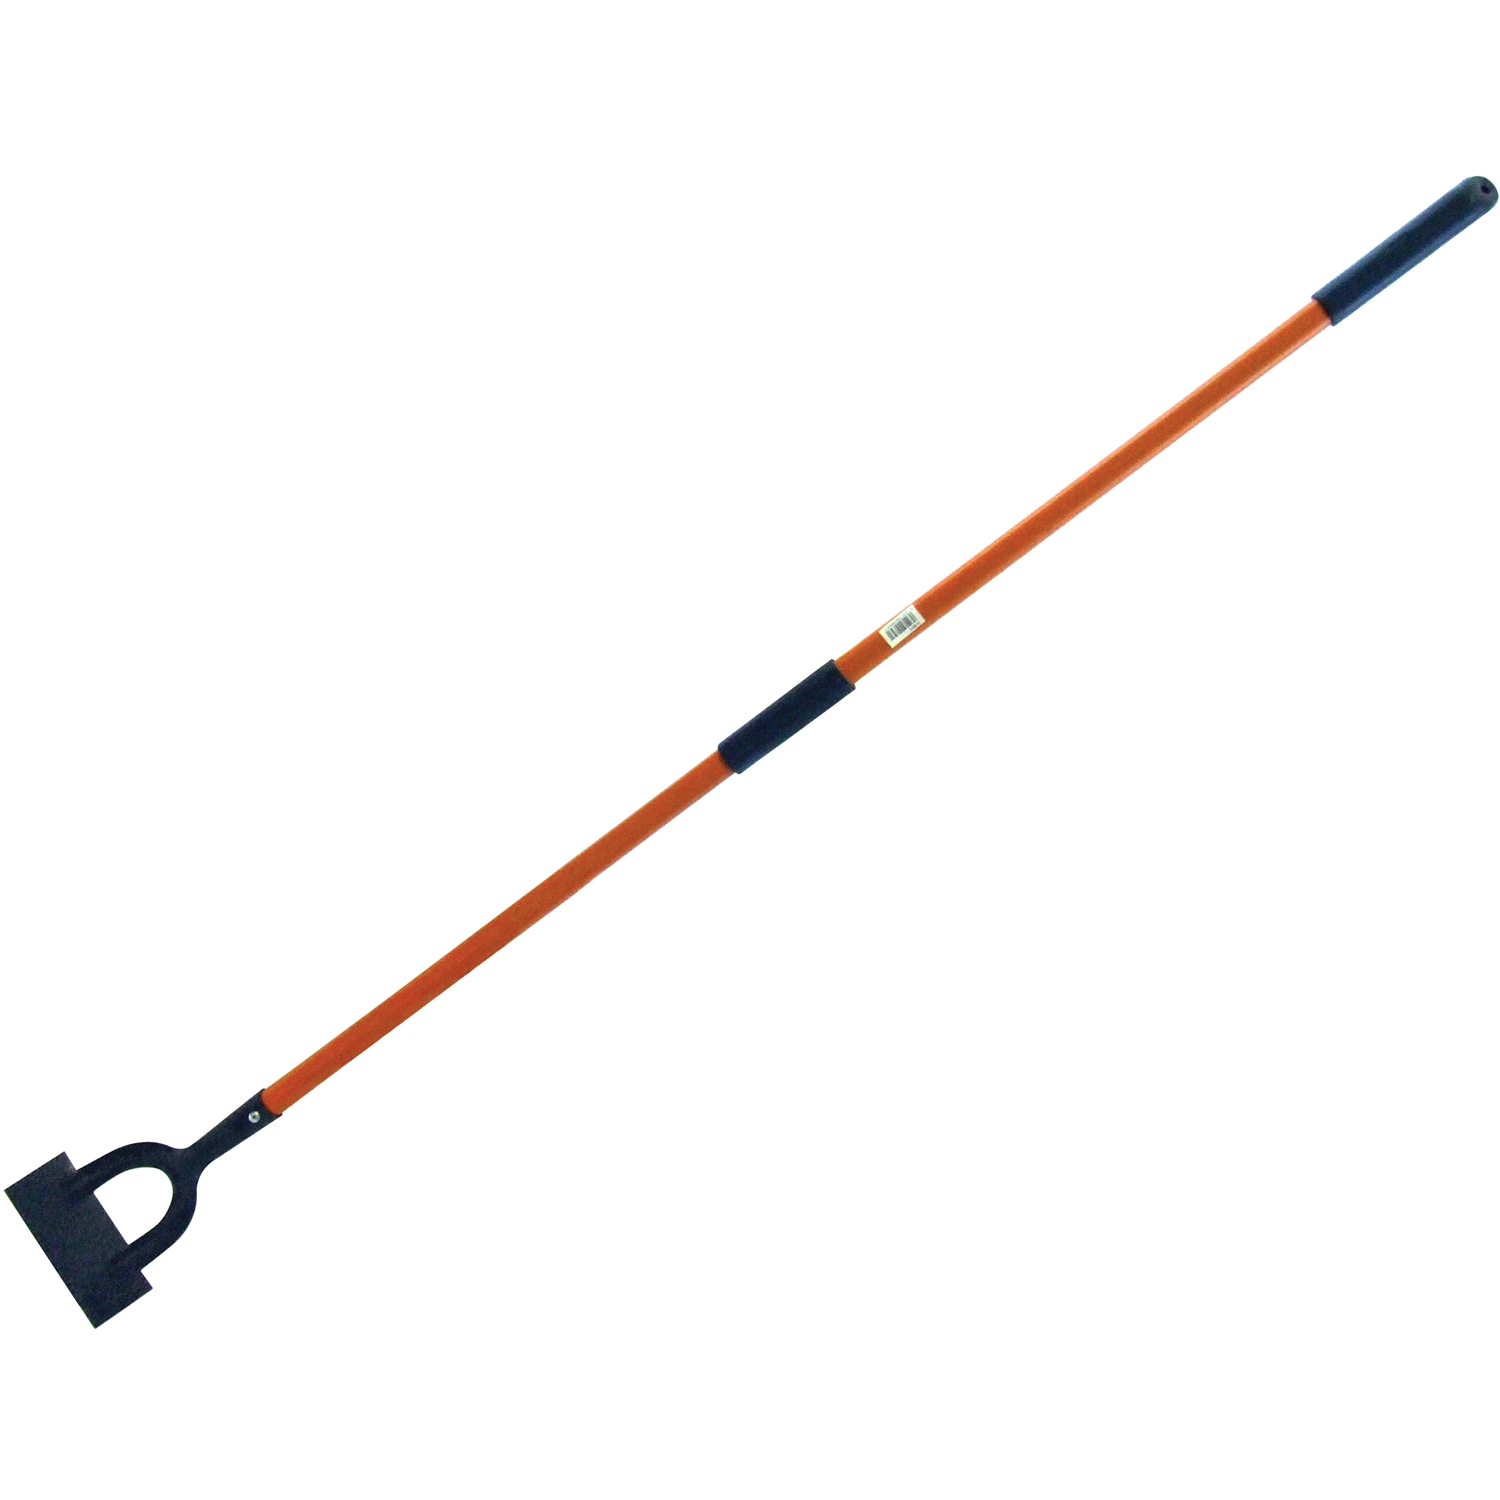 Garden hoe tool bing images for Picture of a garden hoe